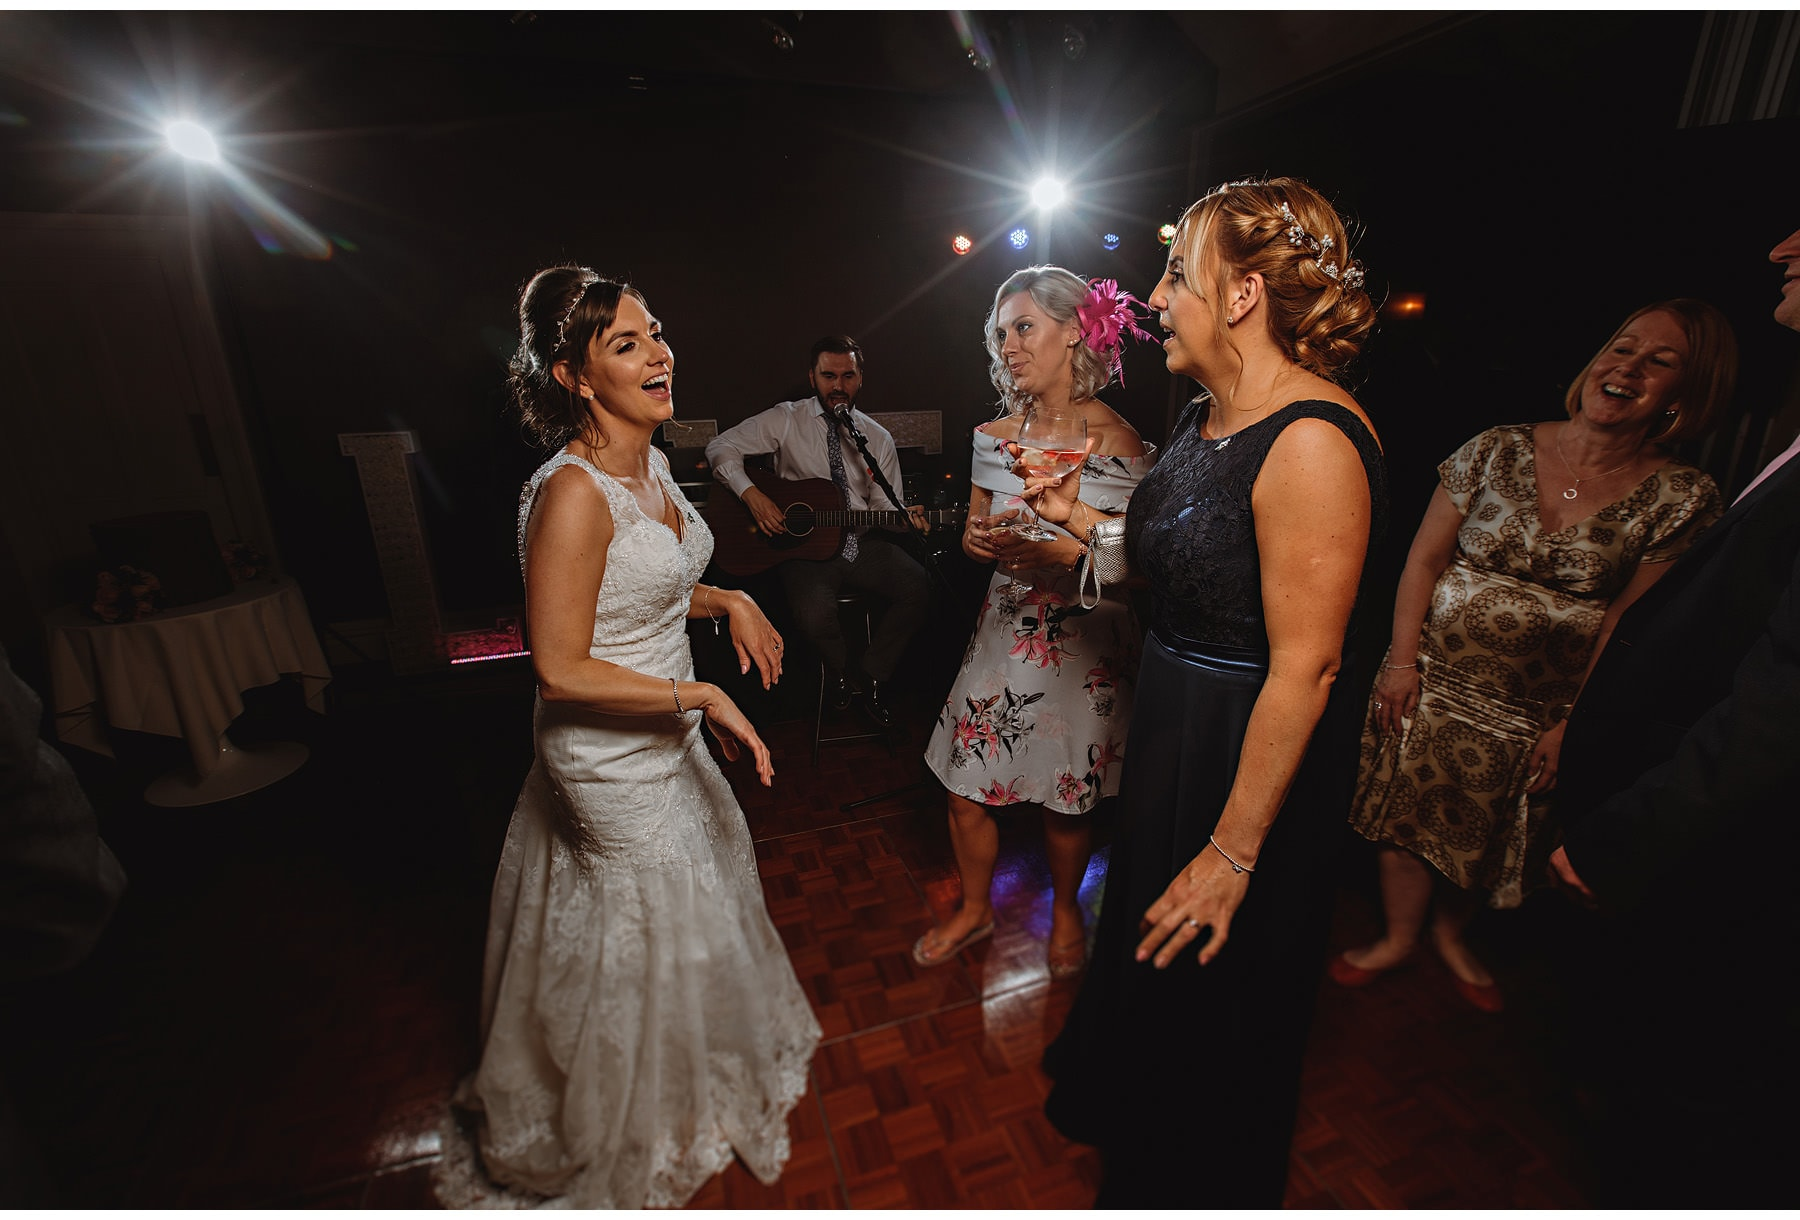 the bride dancing with her friends